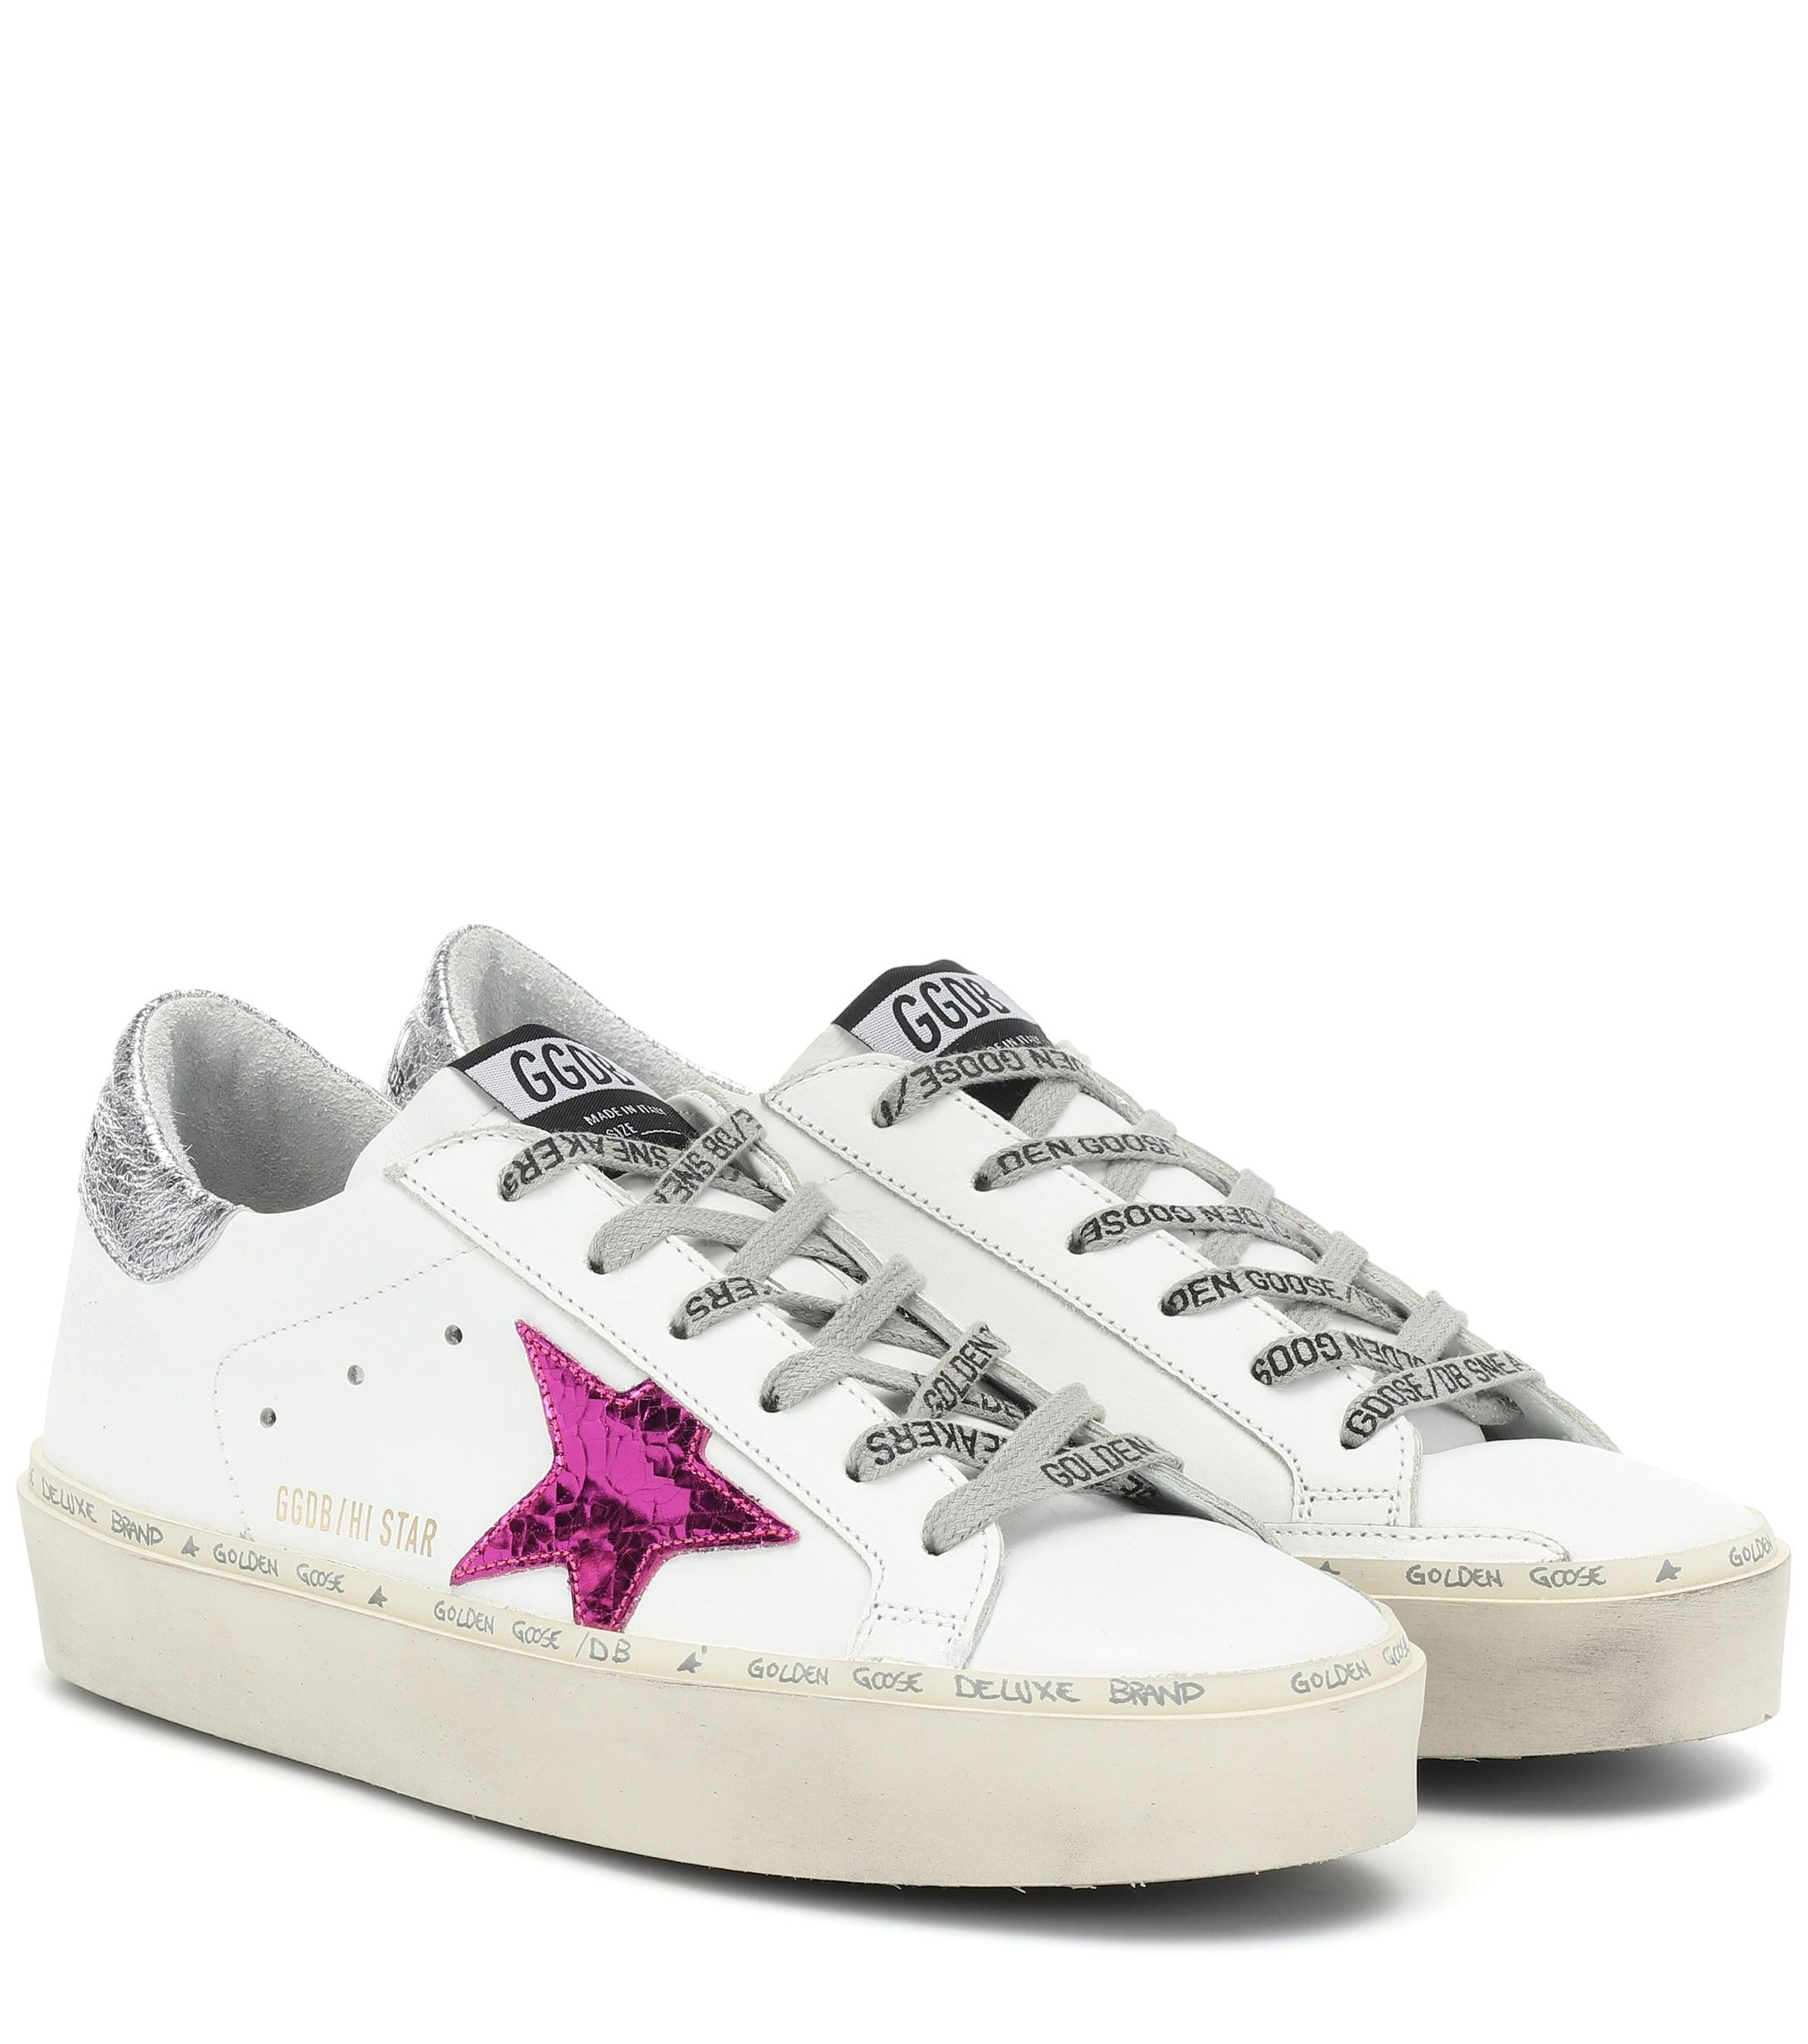 e2a3095c6603 Lyst - Golden Goose Deluxe Brand Hi Star Leather Sneakers in White